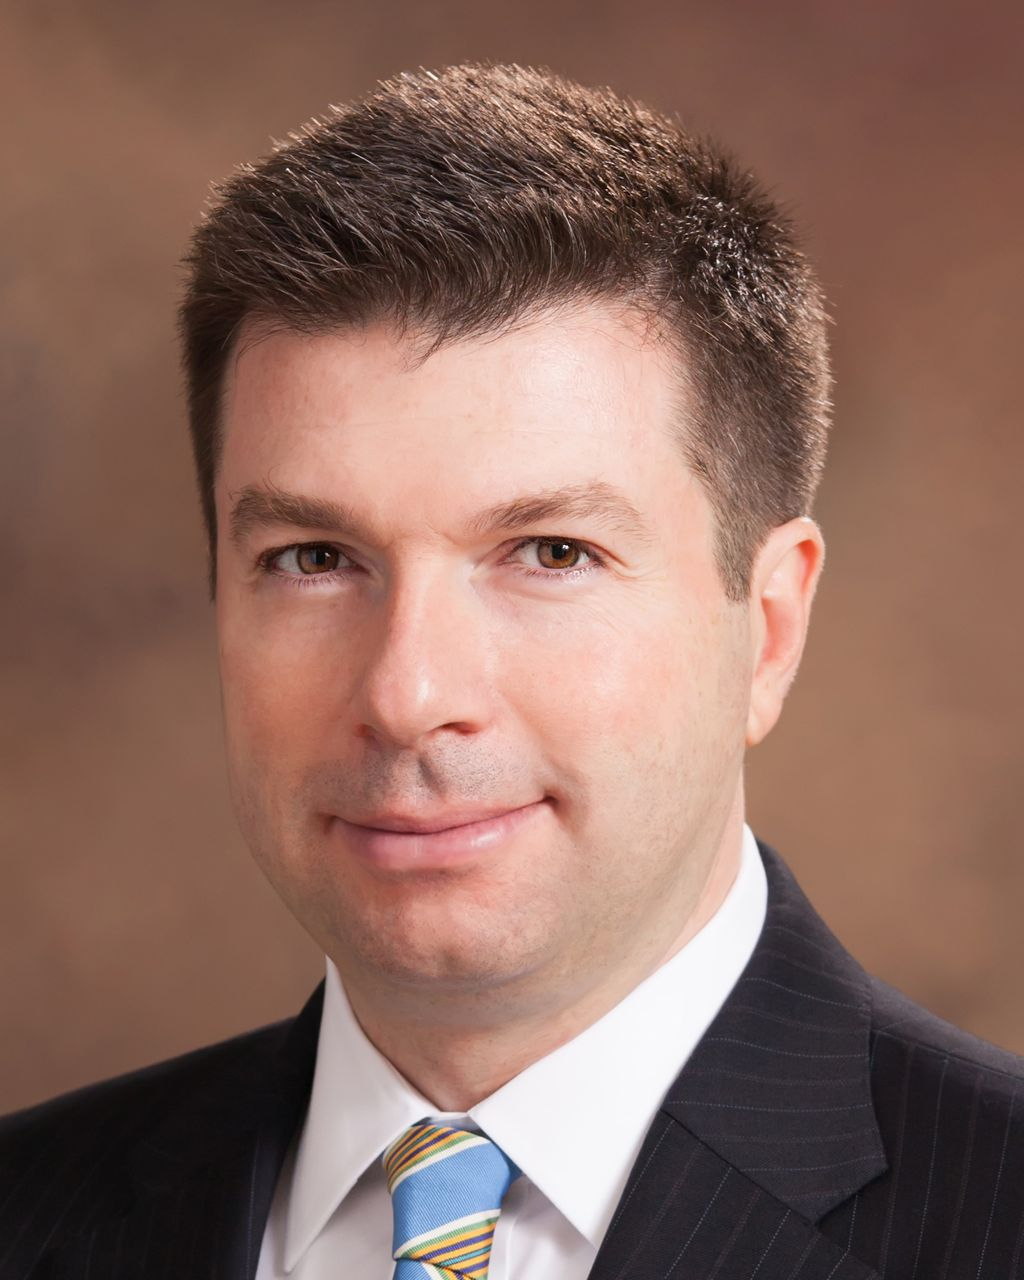 Patrick Cote, financial advisor Weston MA